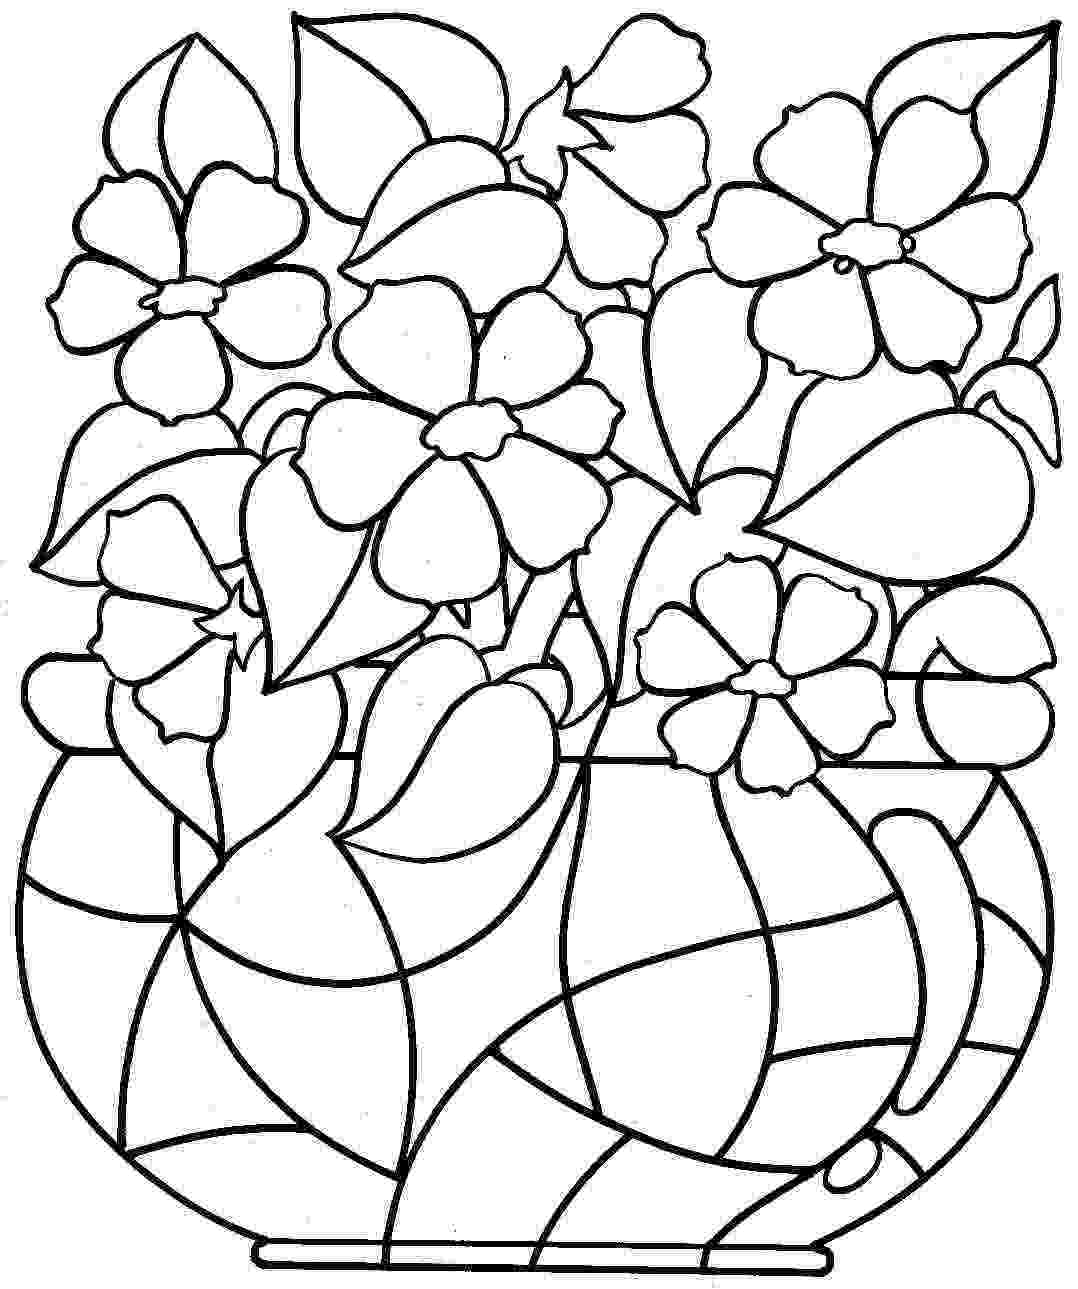 spring flowers printable coloring pages free spring coloring pages for adults the country chic coloring flowers printable spring pages